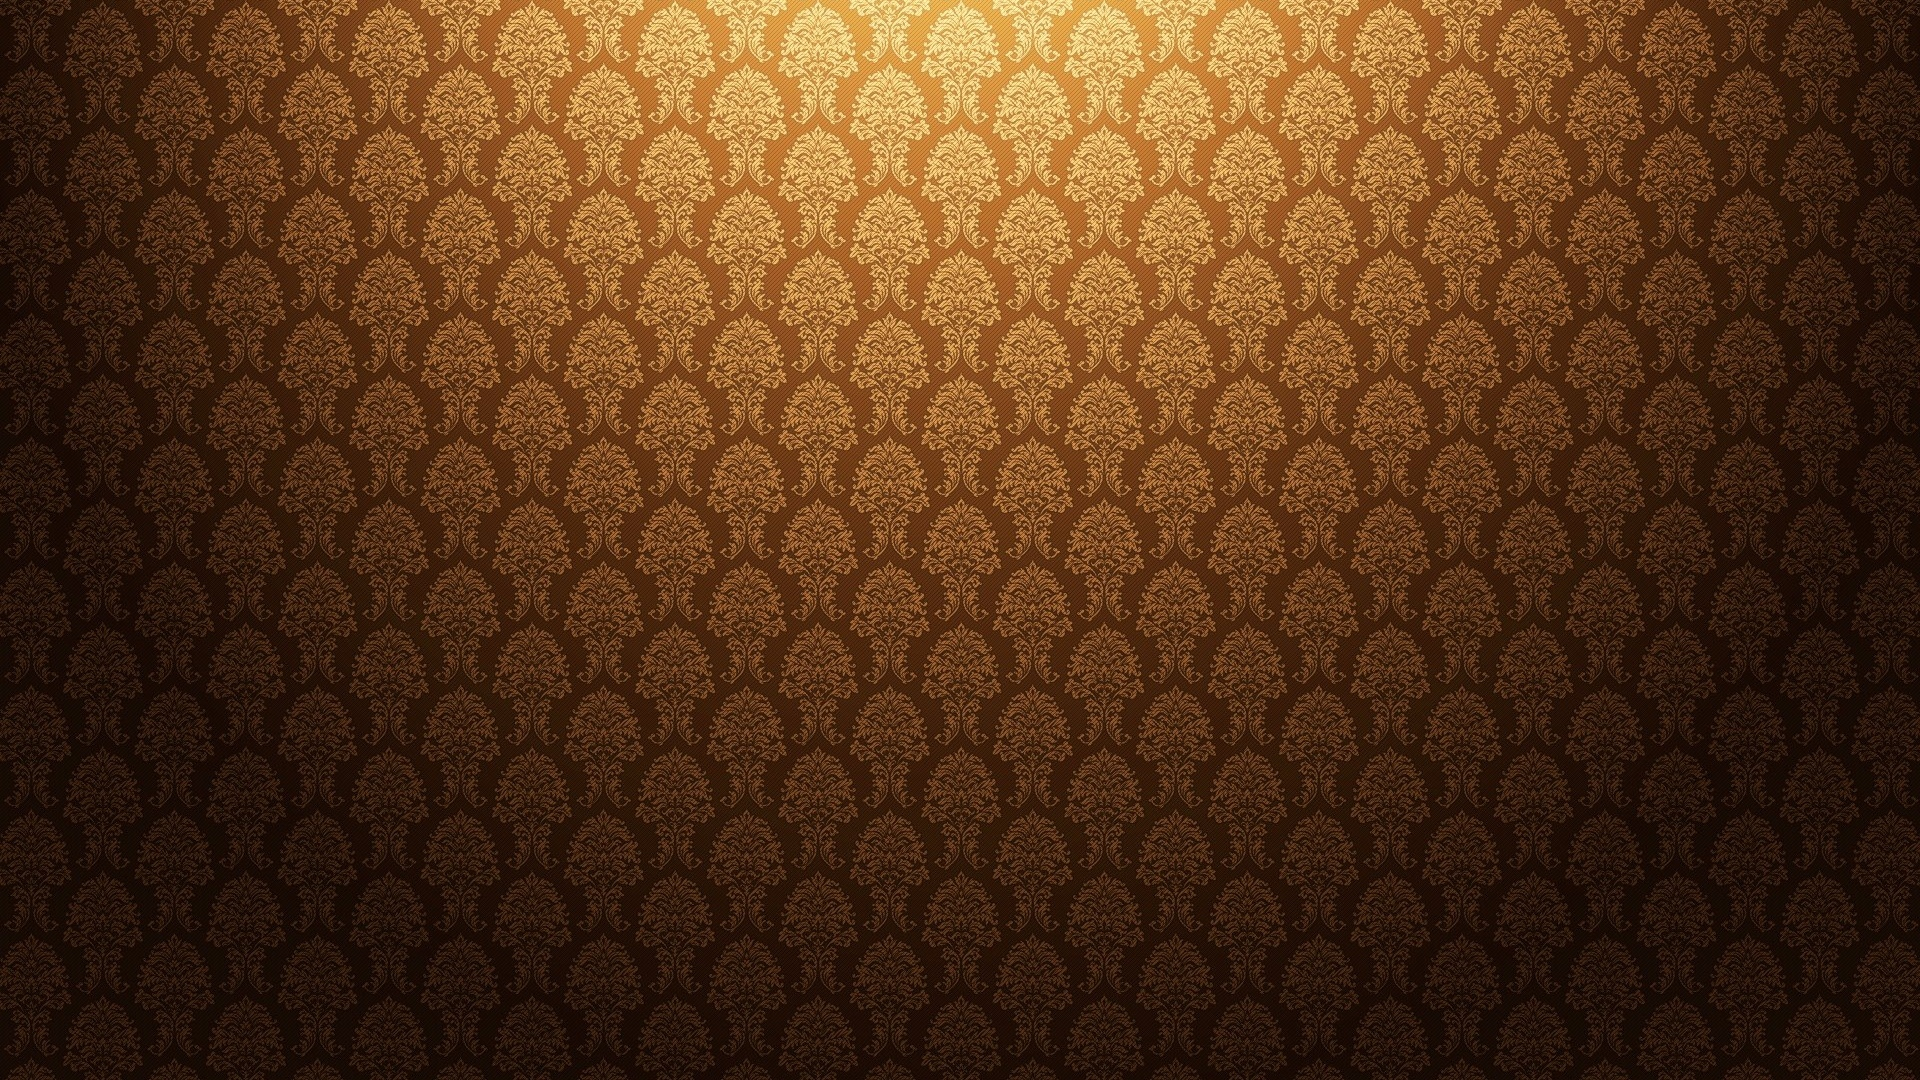 Download Wallpaper gold antique background patterns Full HD 1080p HD Background